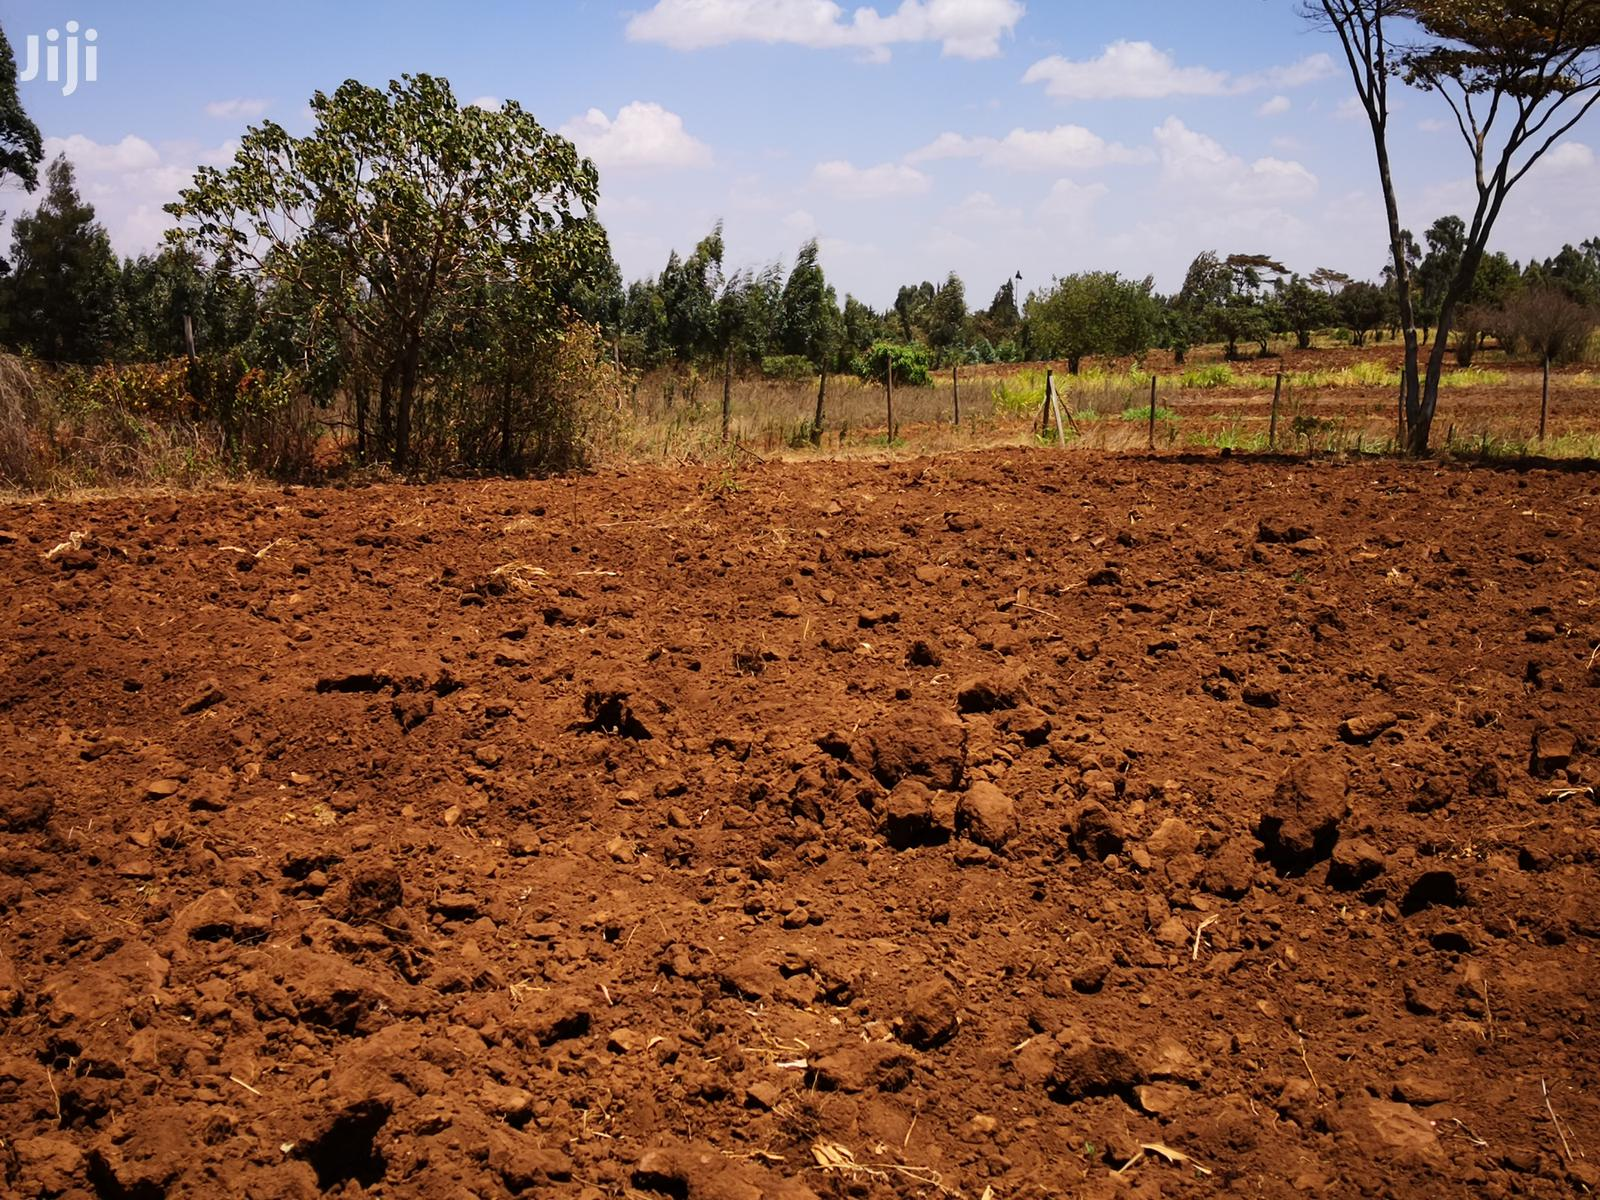 1 Acre for Sale in Kamangu Kikuyu Kiambu Next to Tarmac. | Land & Plots For Sale for sale in Kikuyu, Kiambu, Kenya